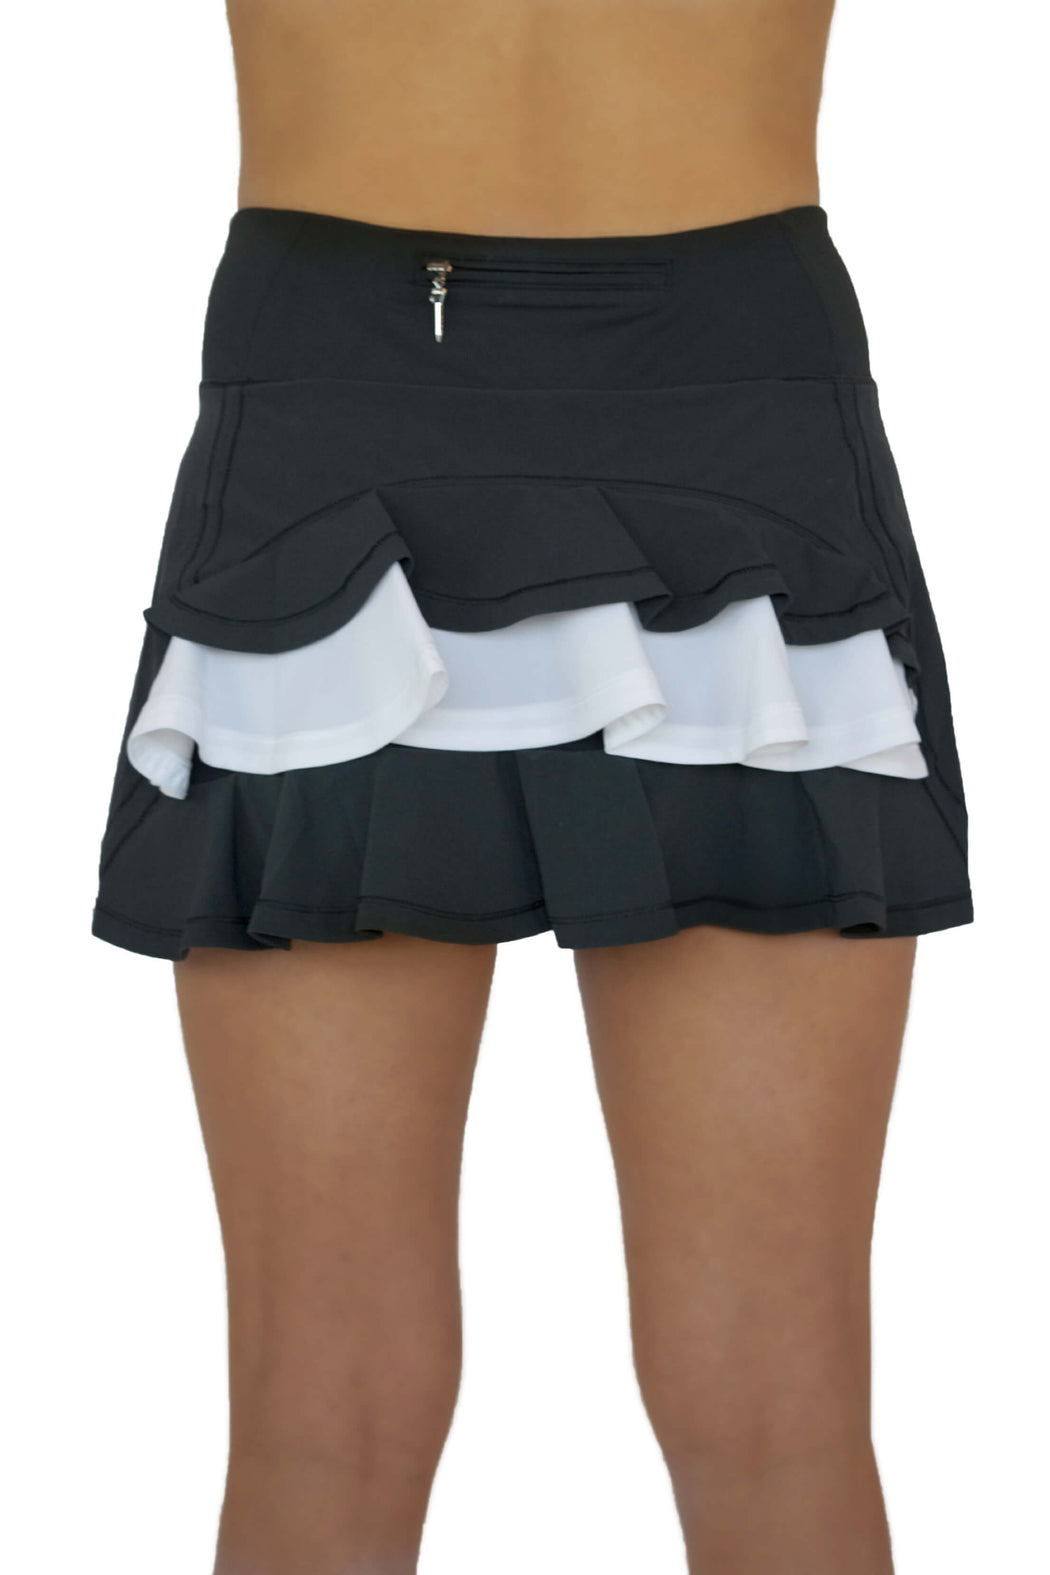 NEW! Ruffle Butt Golf Skirt - Black with White Middle Ruffle - FlirTee Golf